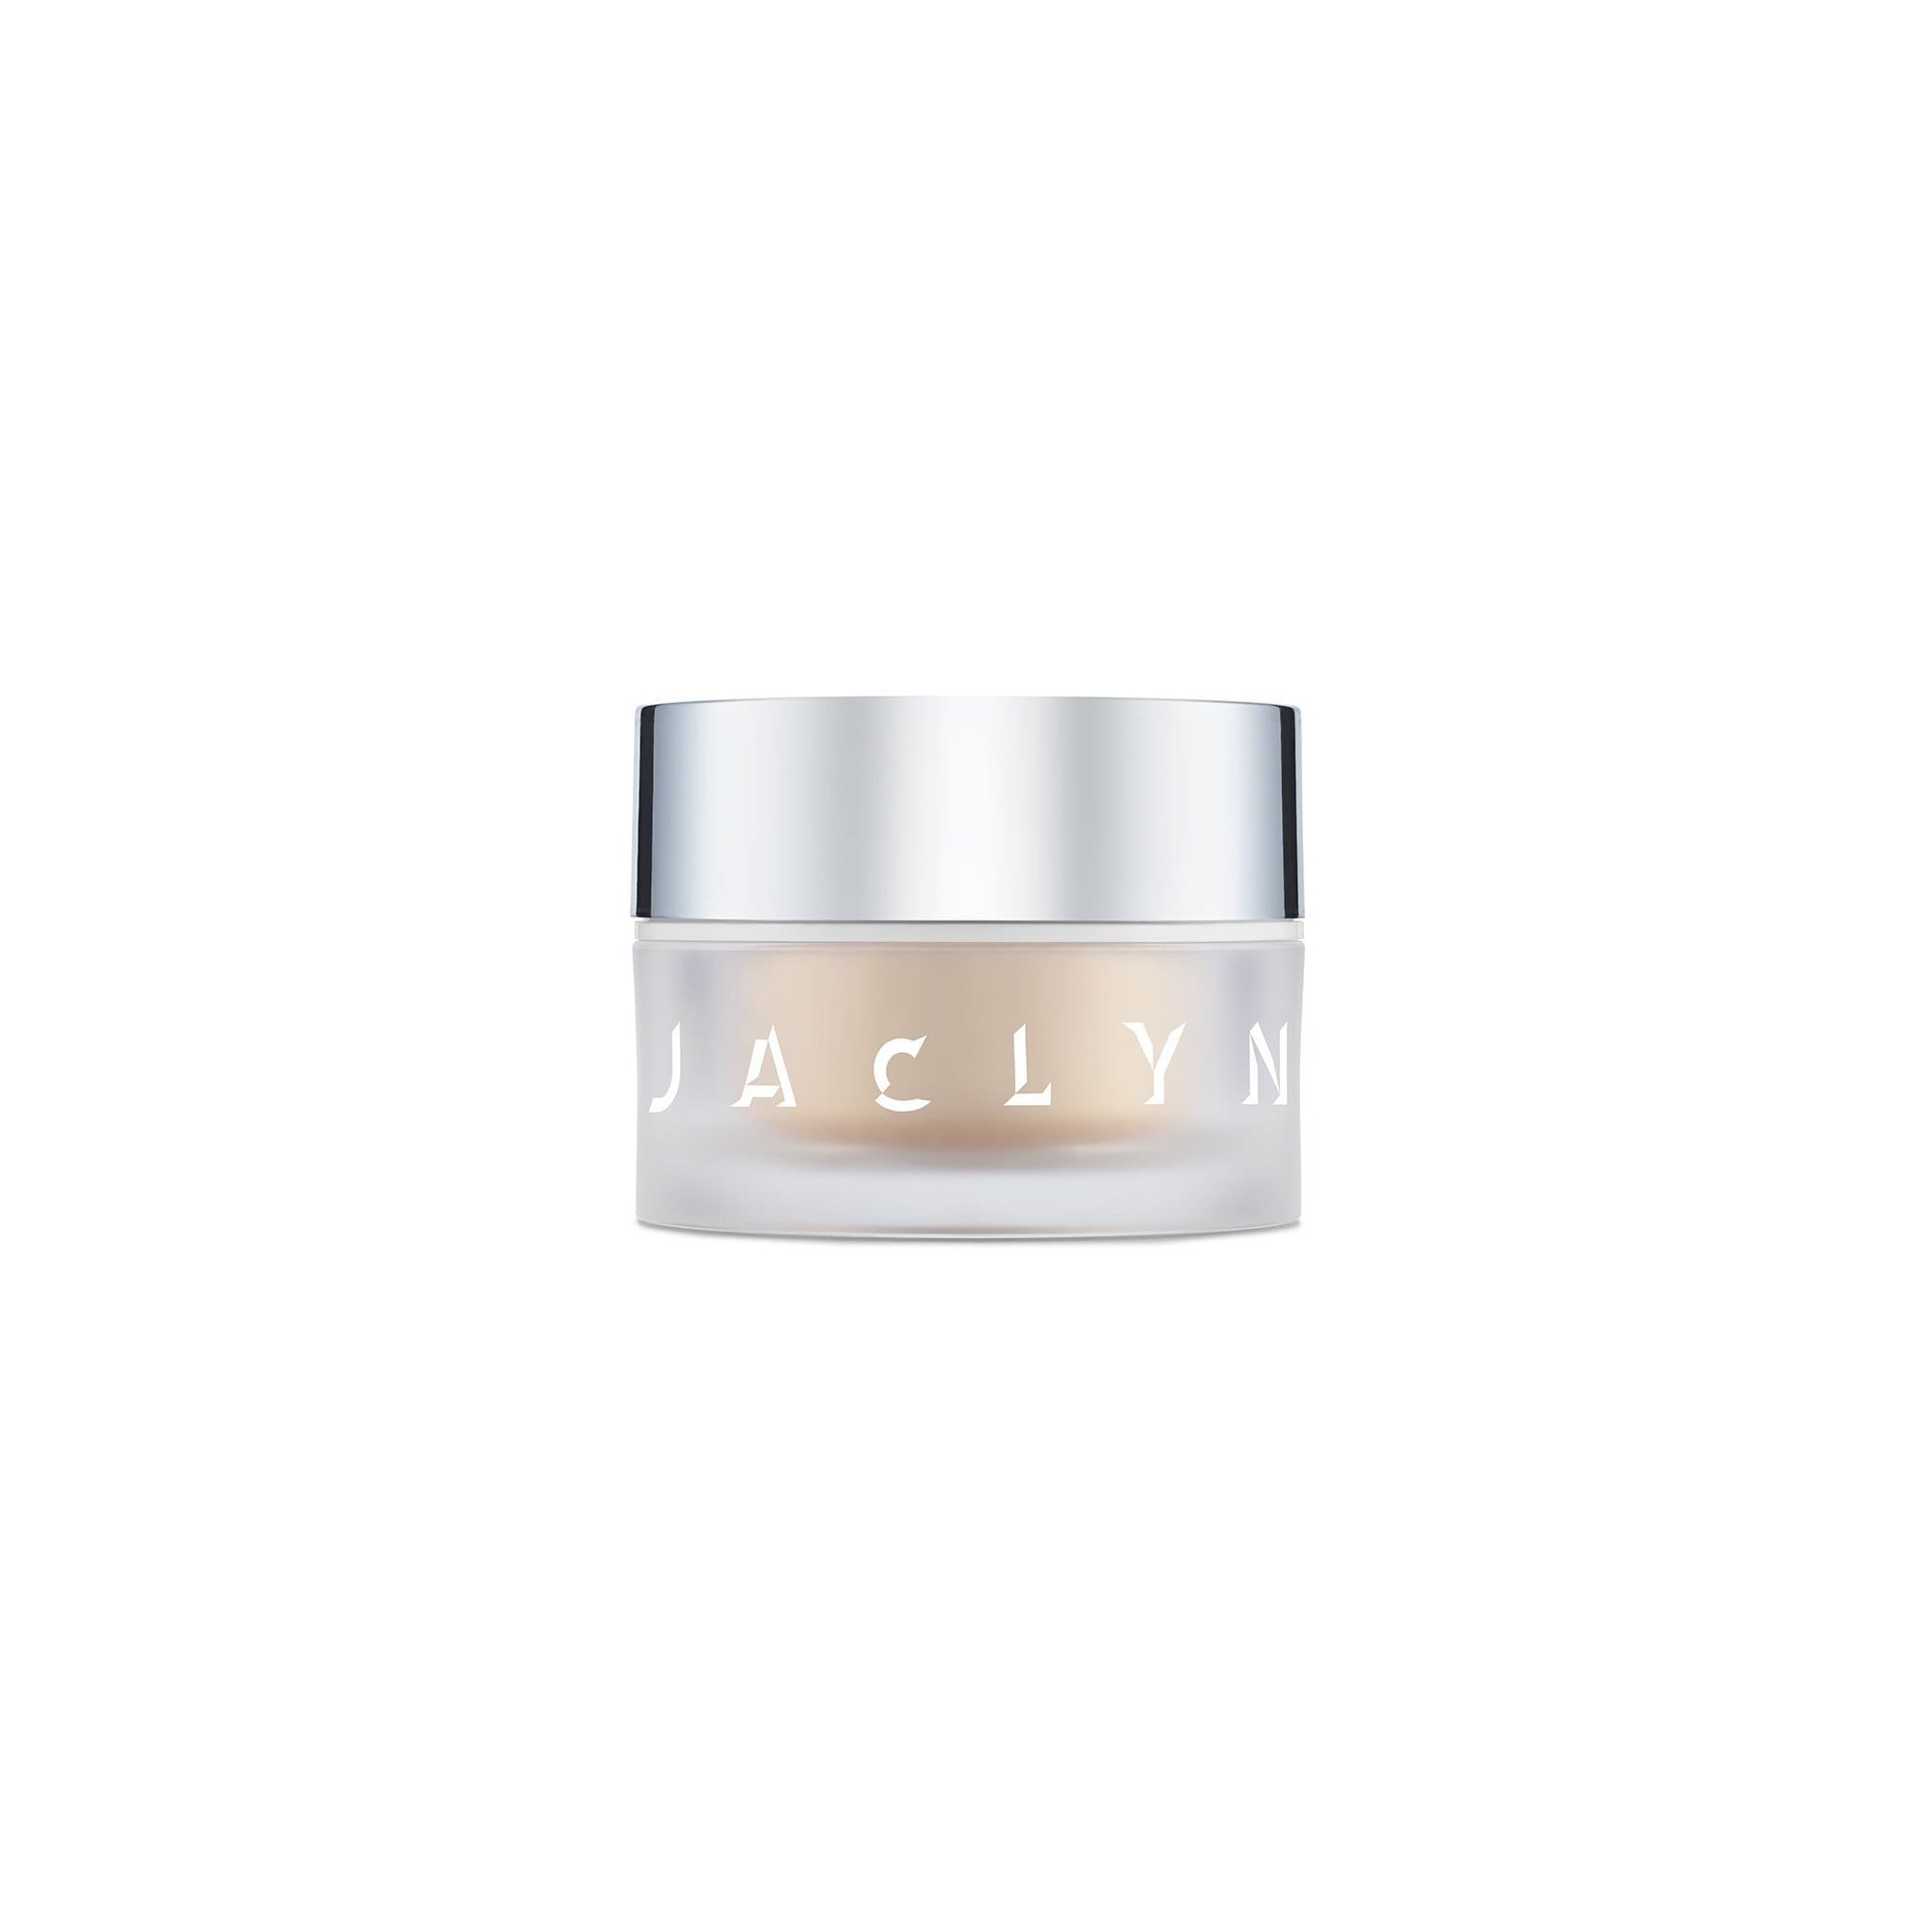 Jaclyn Cosmetics Beaming Light Loose Highlighter Extra